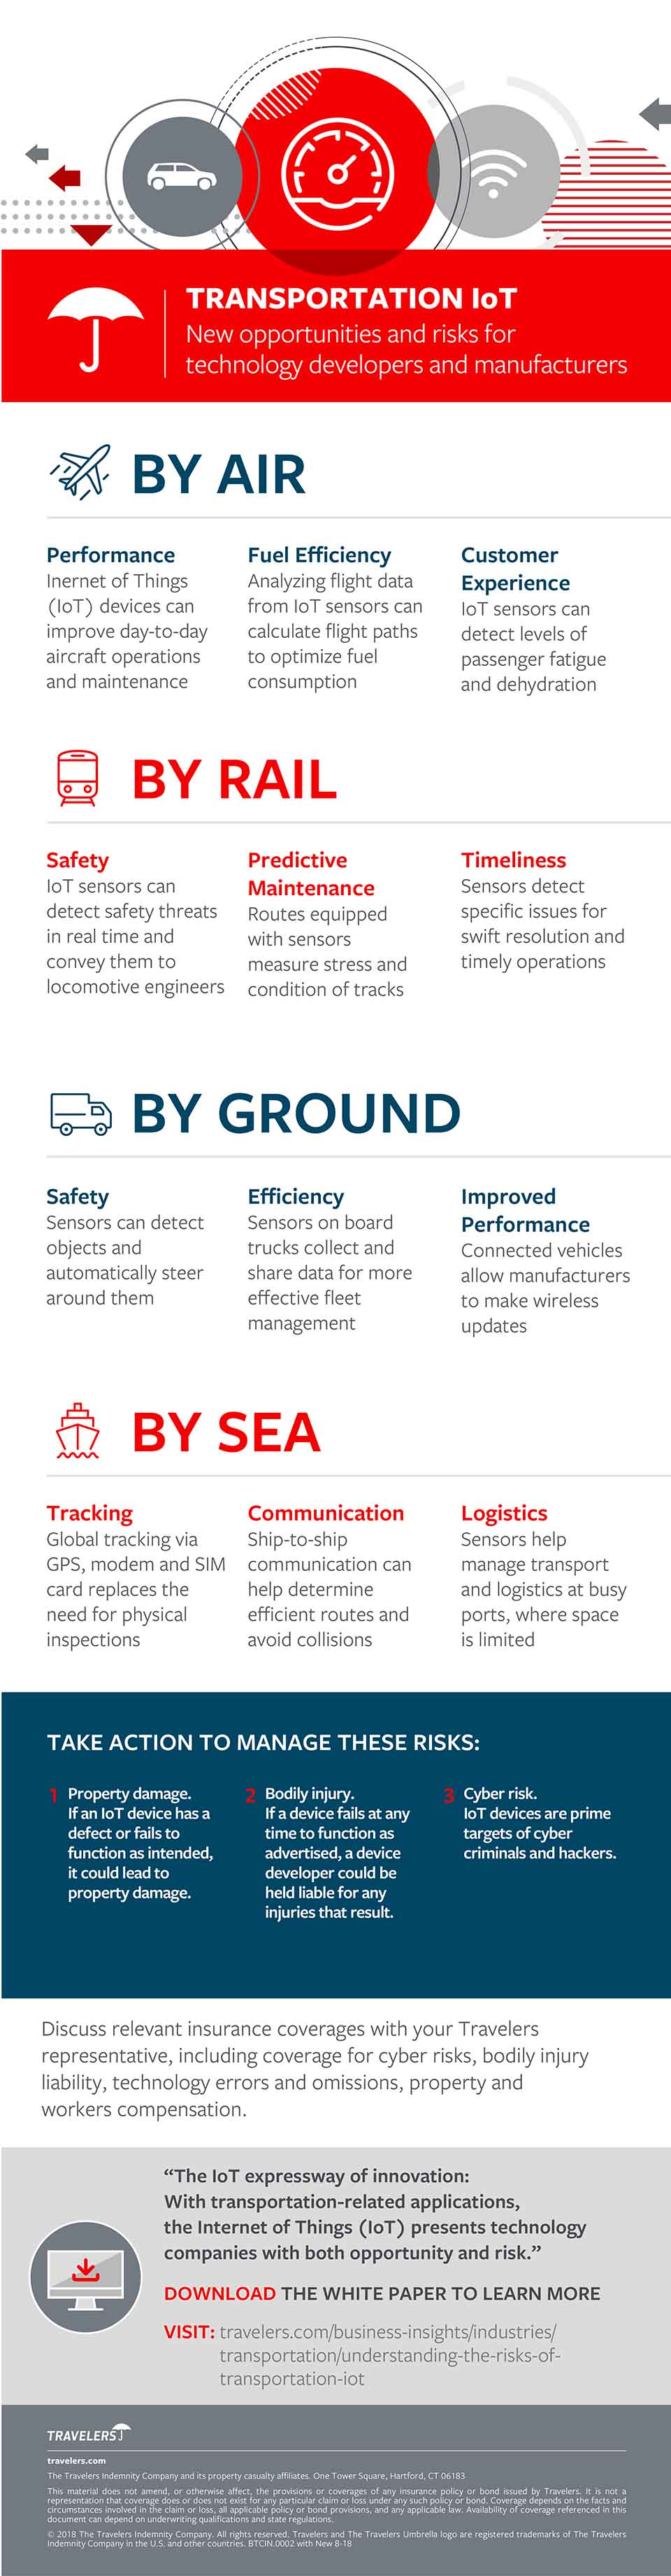 Transportation IoT Opportunities and Risks Infographic